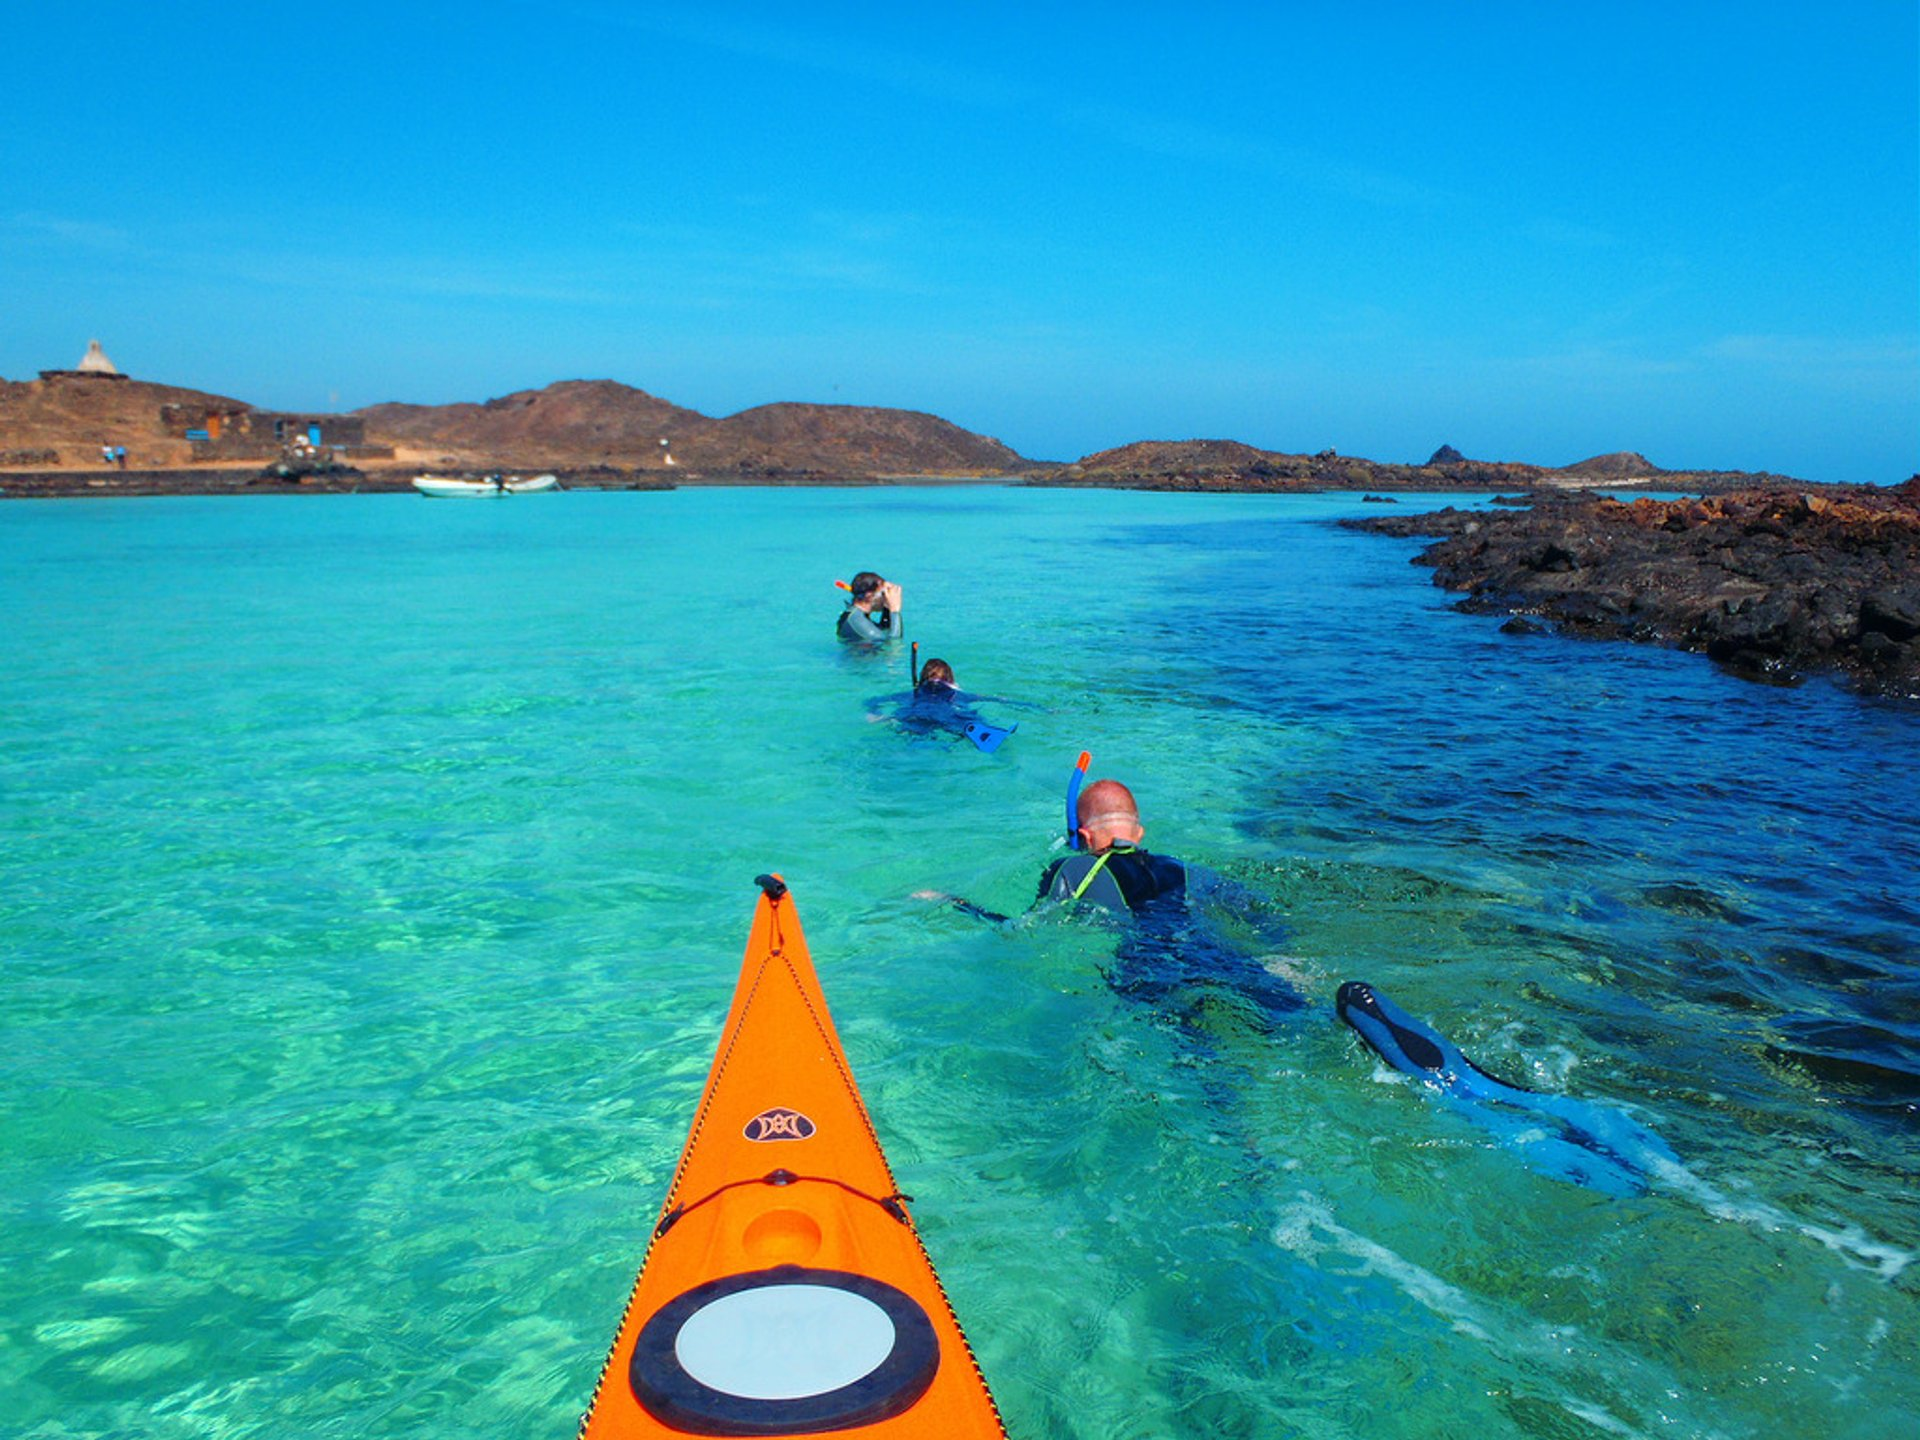 Kayaking and snorkeling around Lobos Island, off the coast of Fuerteventura 2020